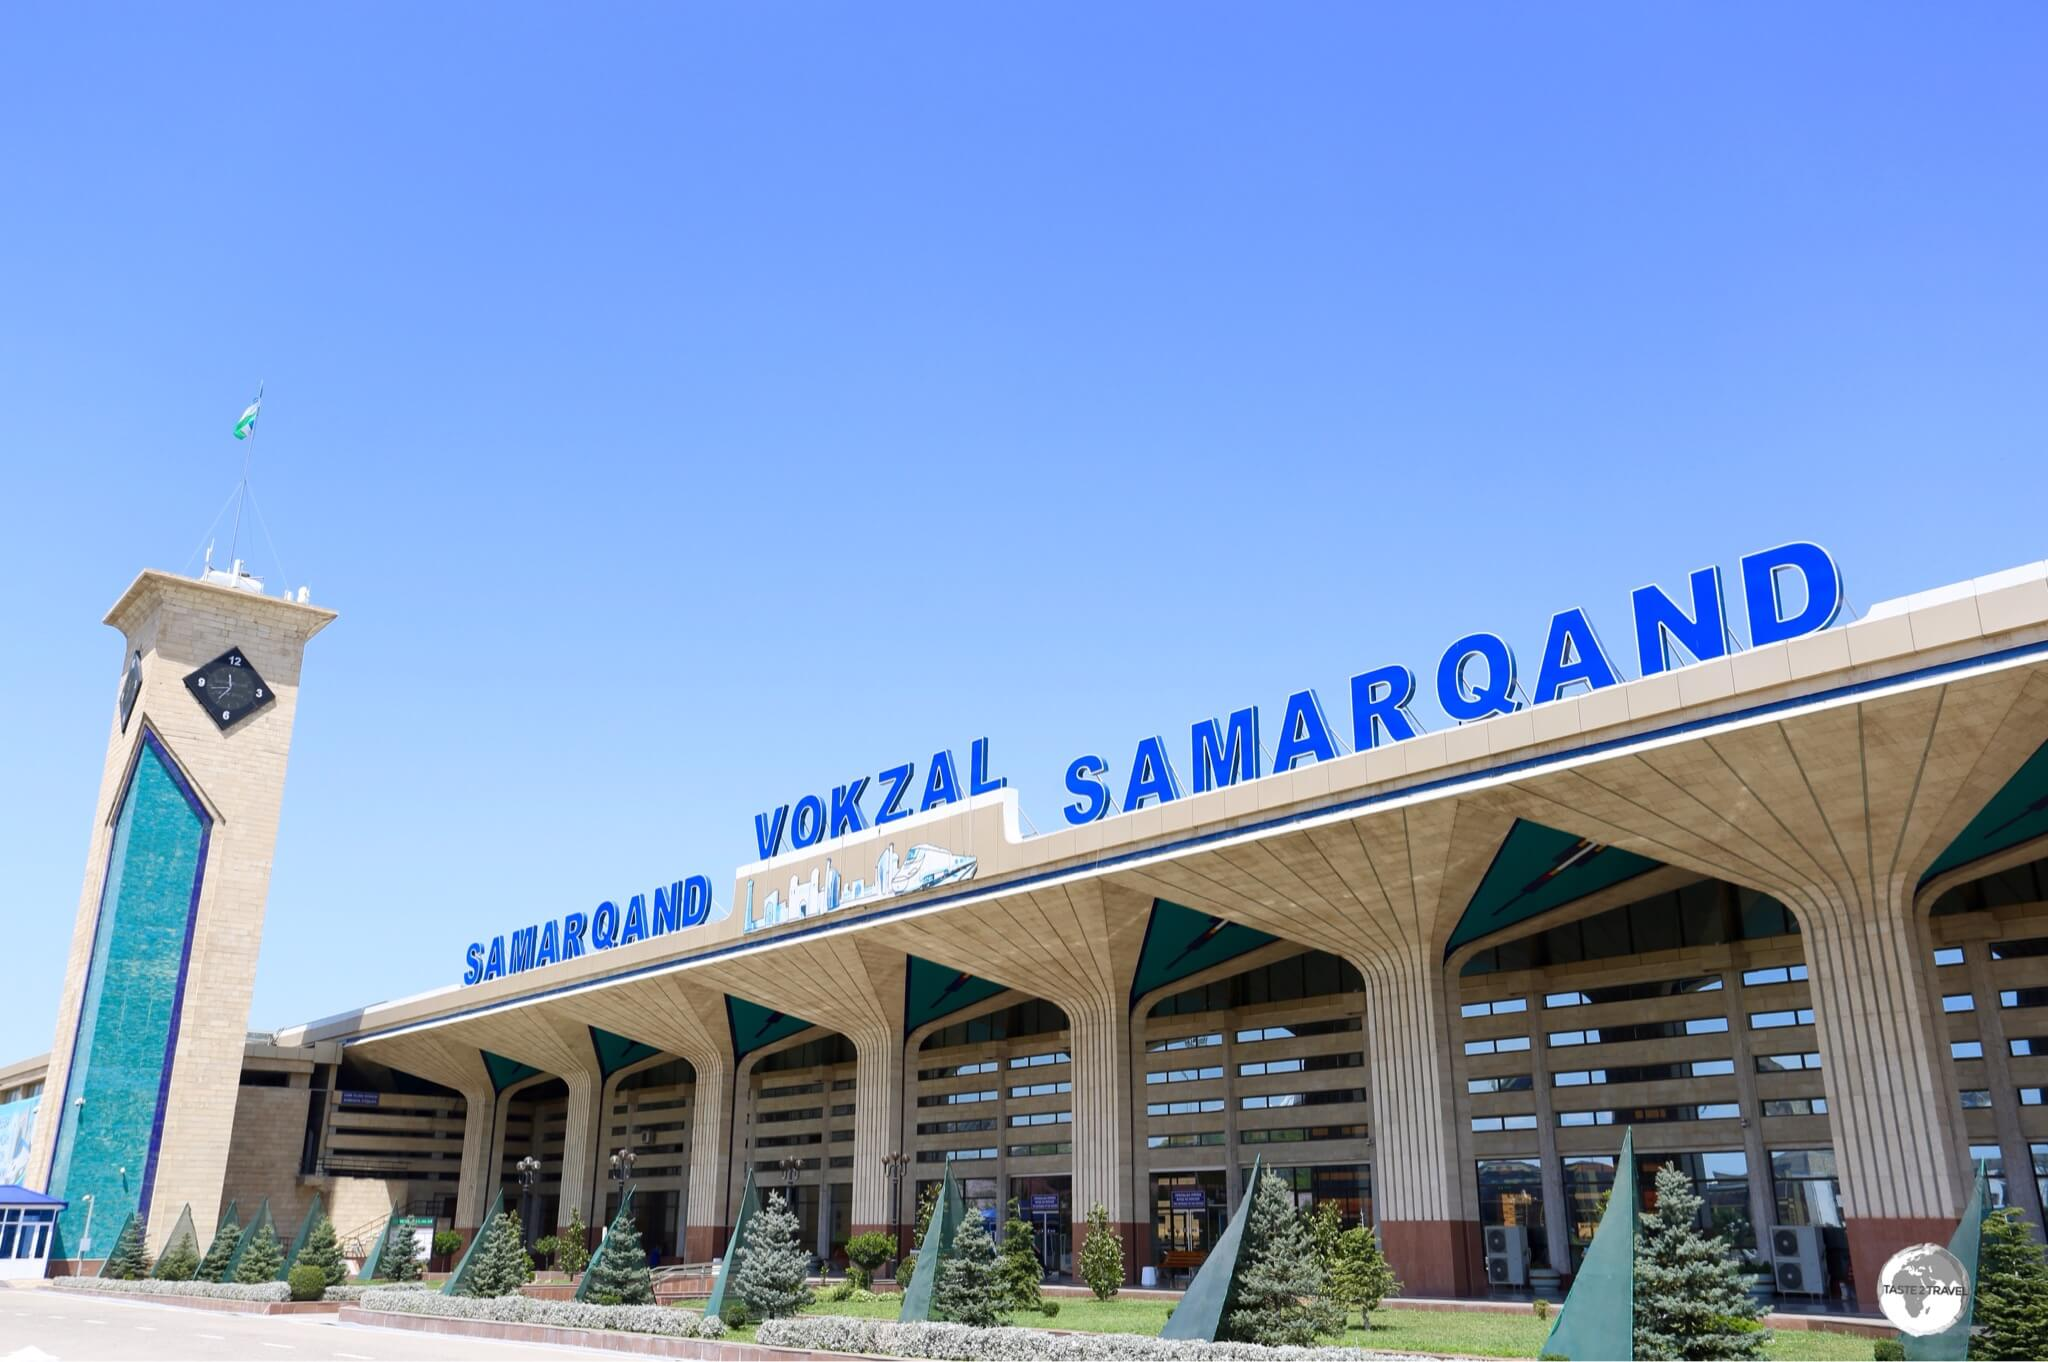 Like all train stations in Uzbekistan, Samarkand station is kept spotlessly clean, quiet, orderly and relaxed.